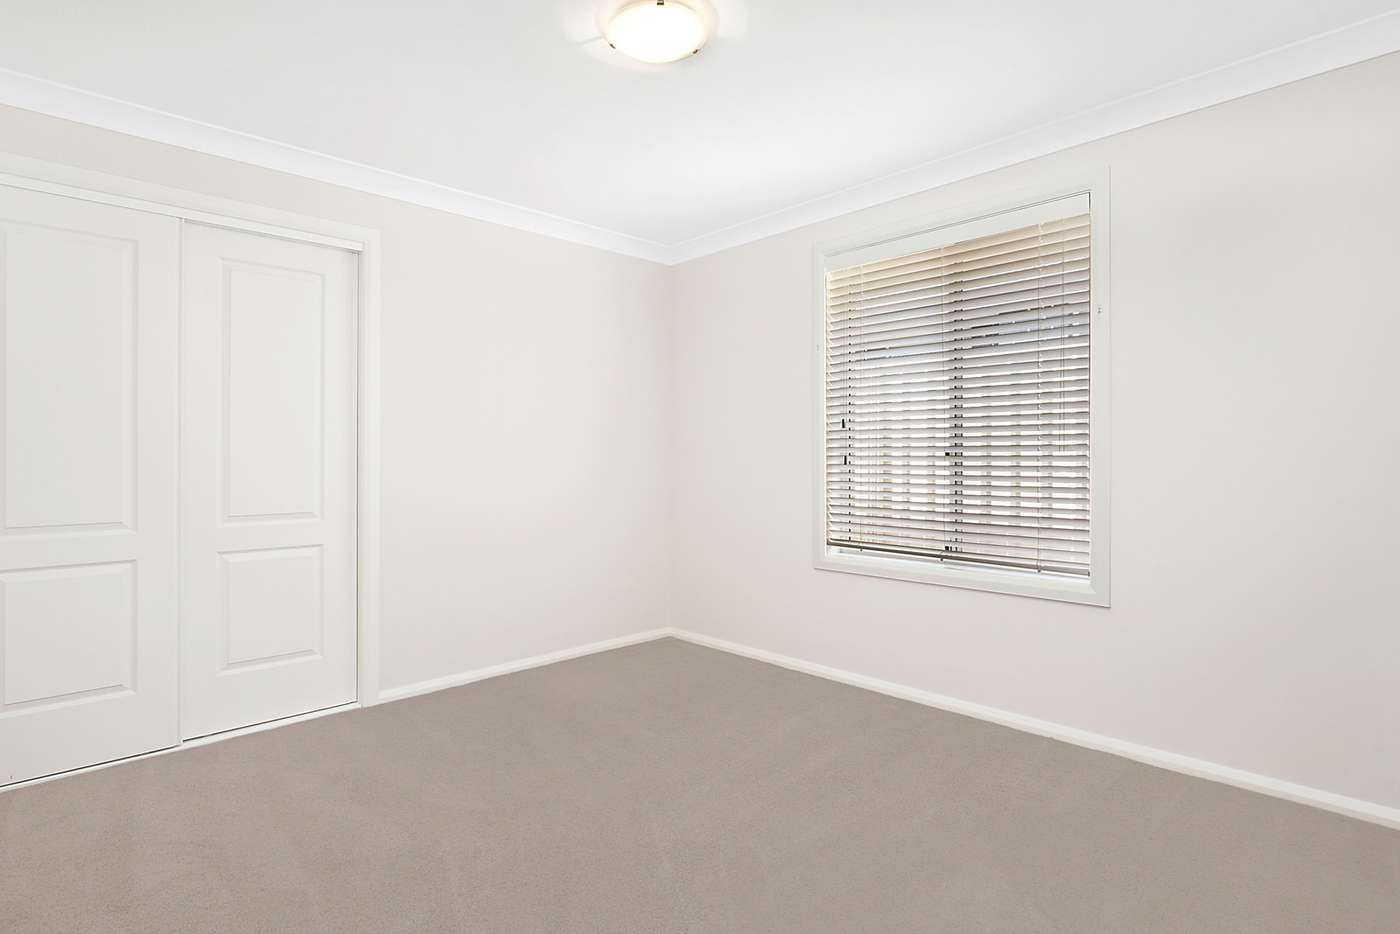 Sixth view of Homely house listing, 6 Michael Street, Schofields NSW 2762